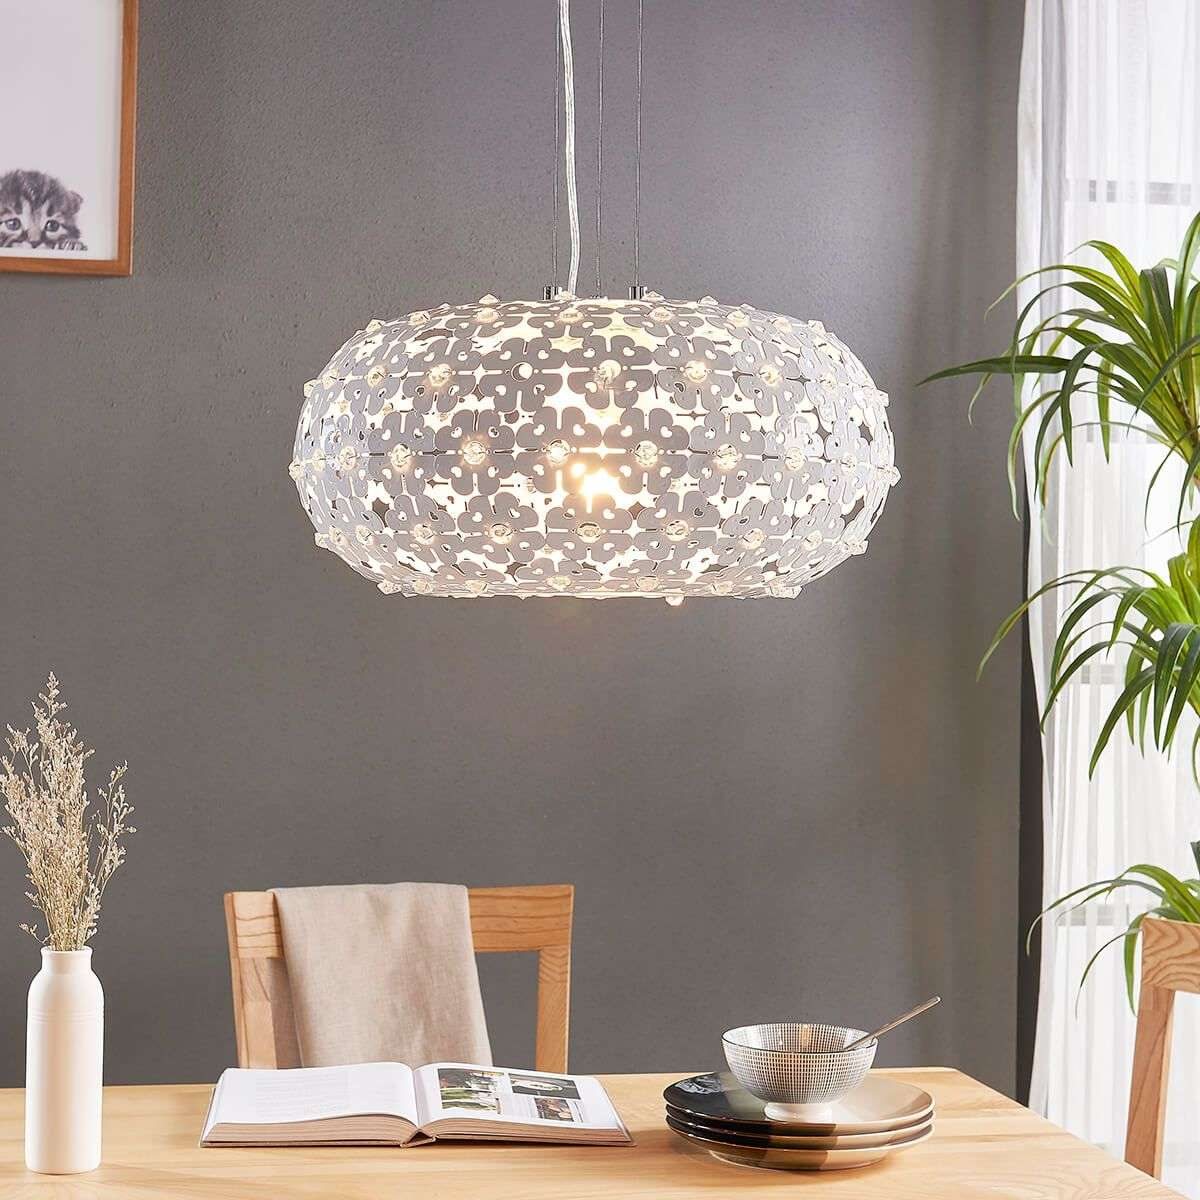 Chara pendant light with a floral design lights chara pendant light with a floral design 9621179 32 aloadofball Choice Image